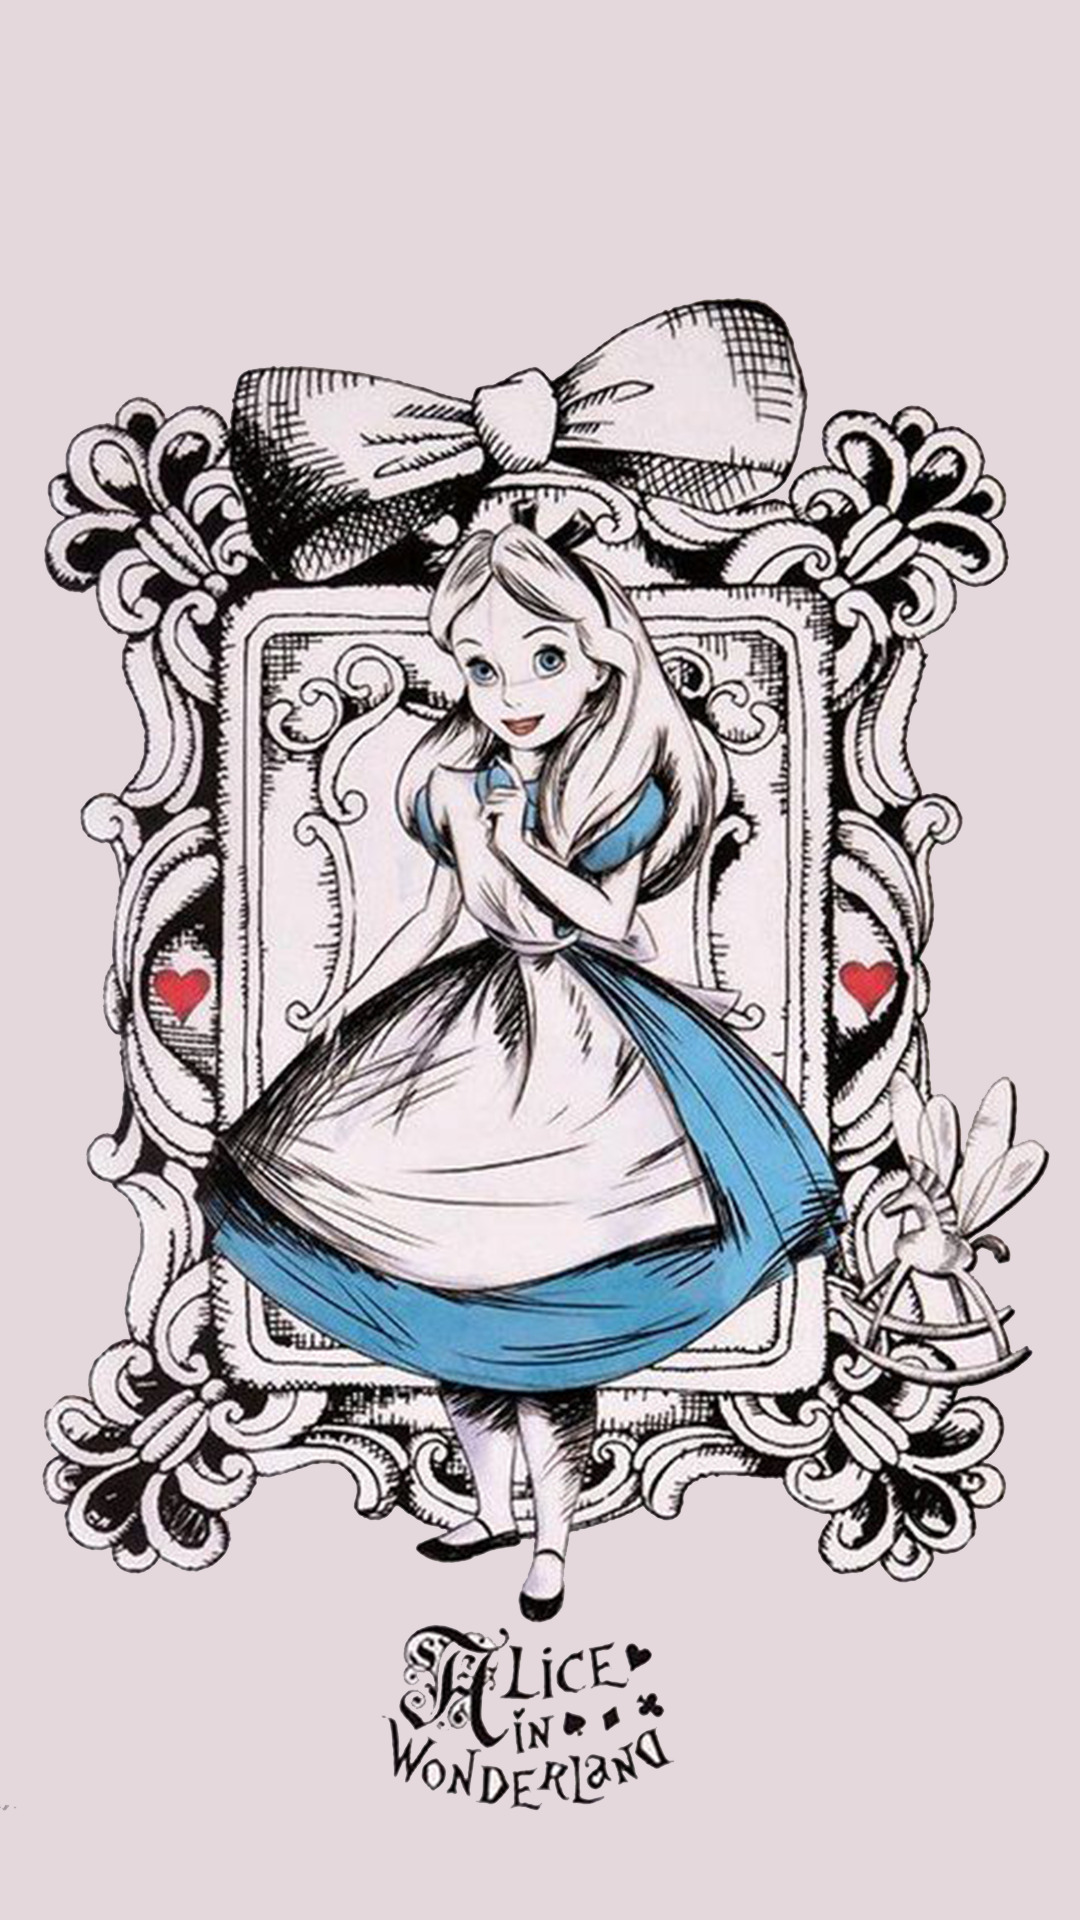 Wallpaper Alice In Wonderland Posted By John Mercado